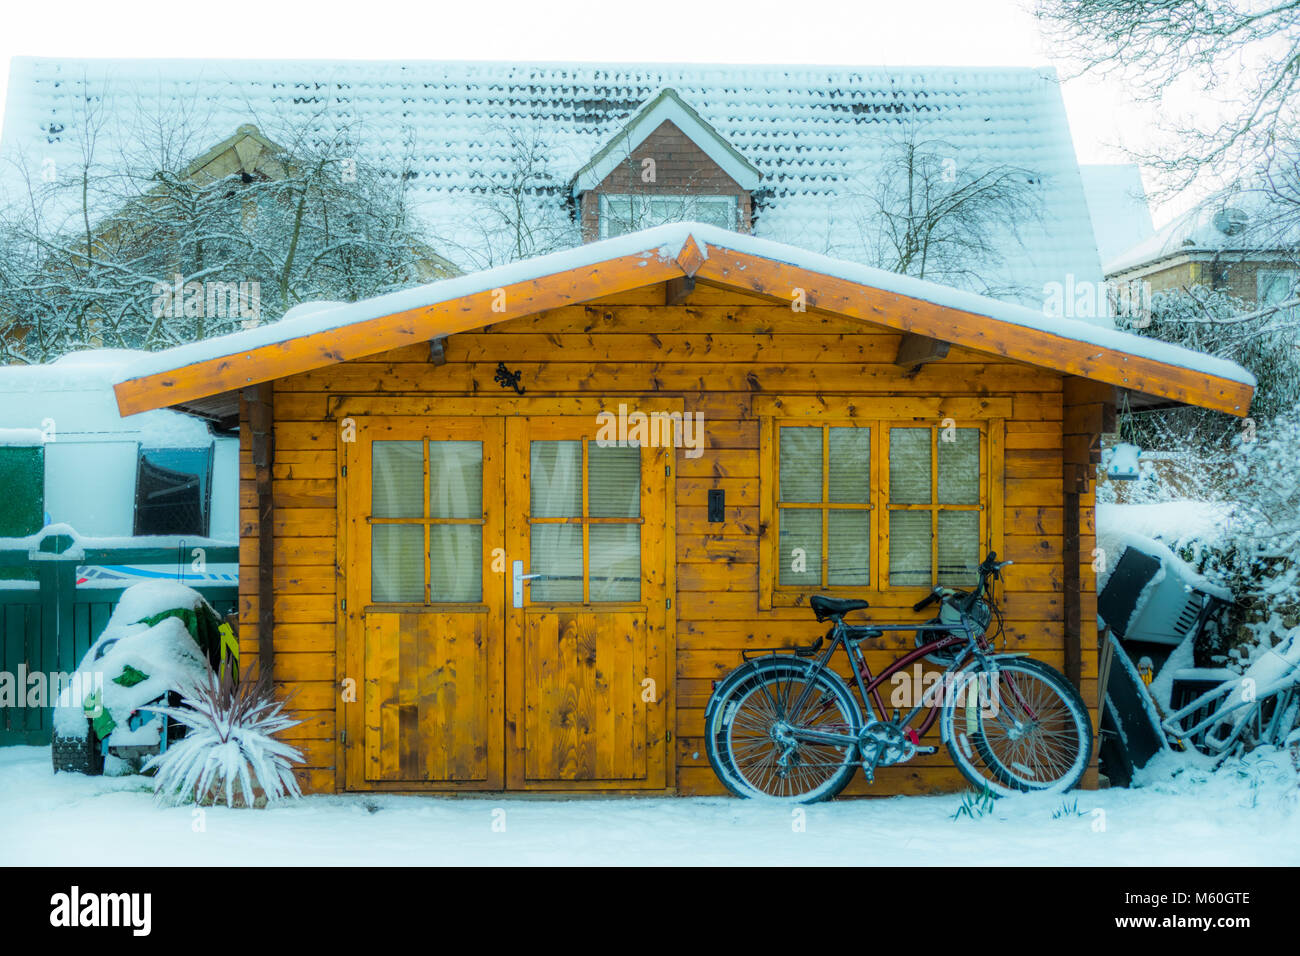 Fresh early morning winter snow around a log cabin / summerhouse (wooden garden building), in a snowy village garden. - Stock Image